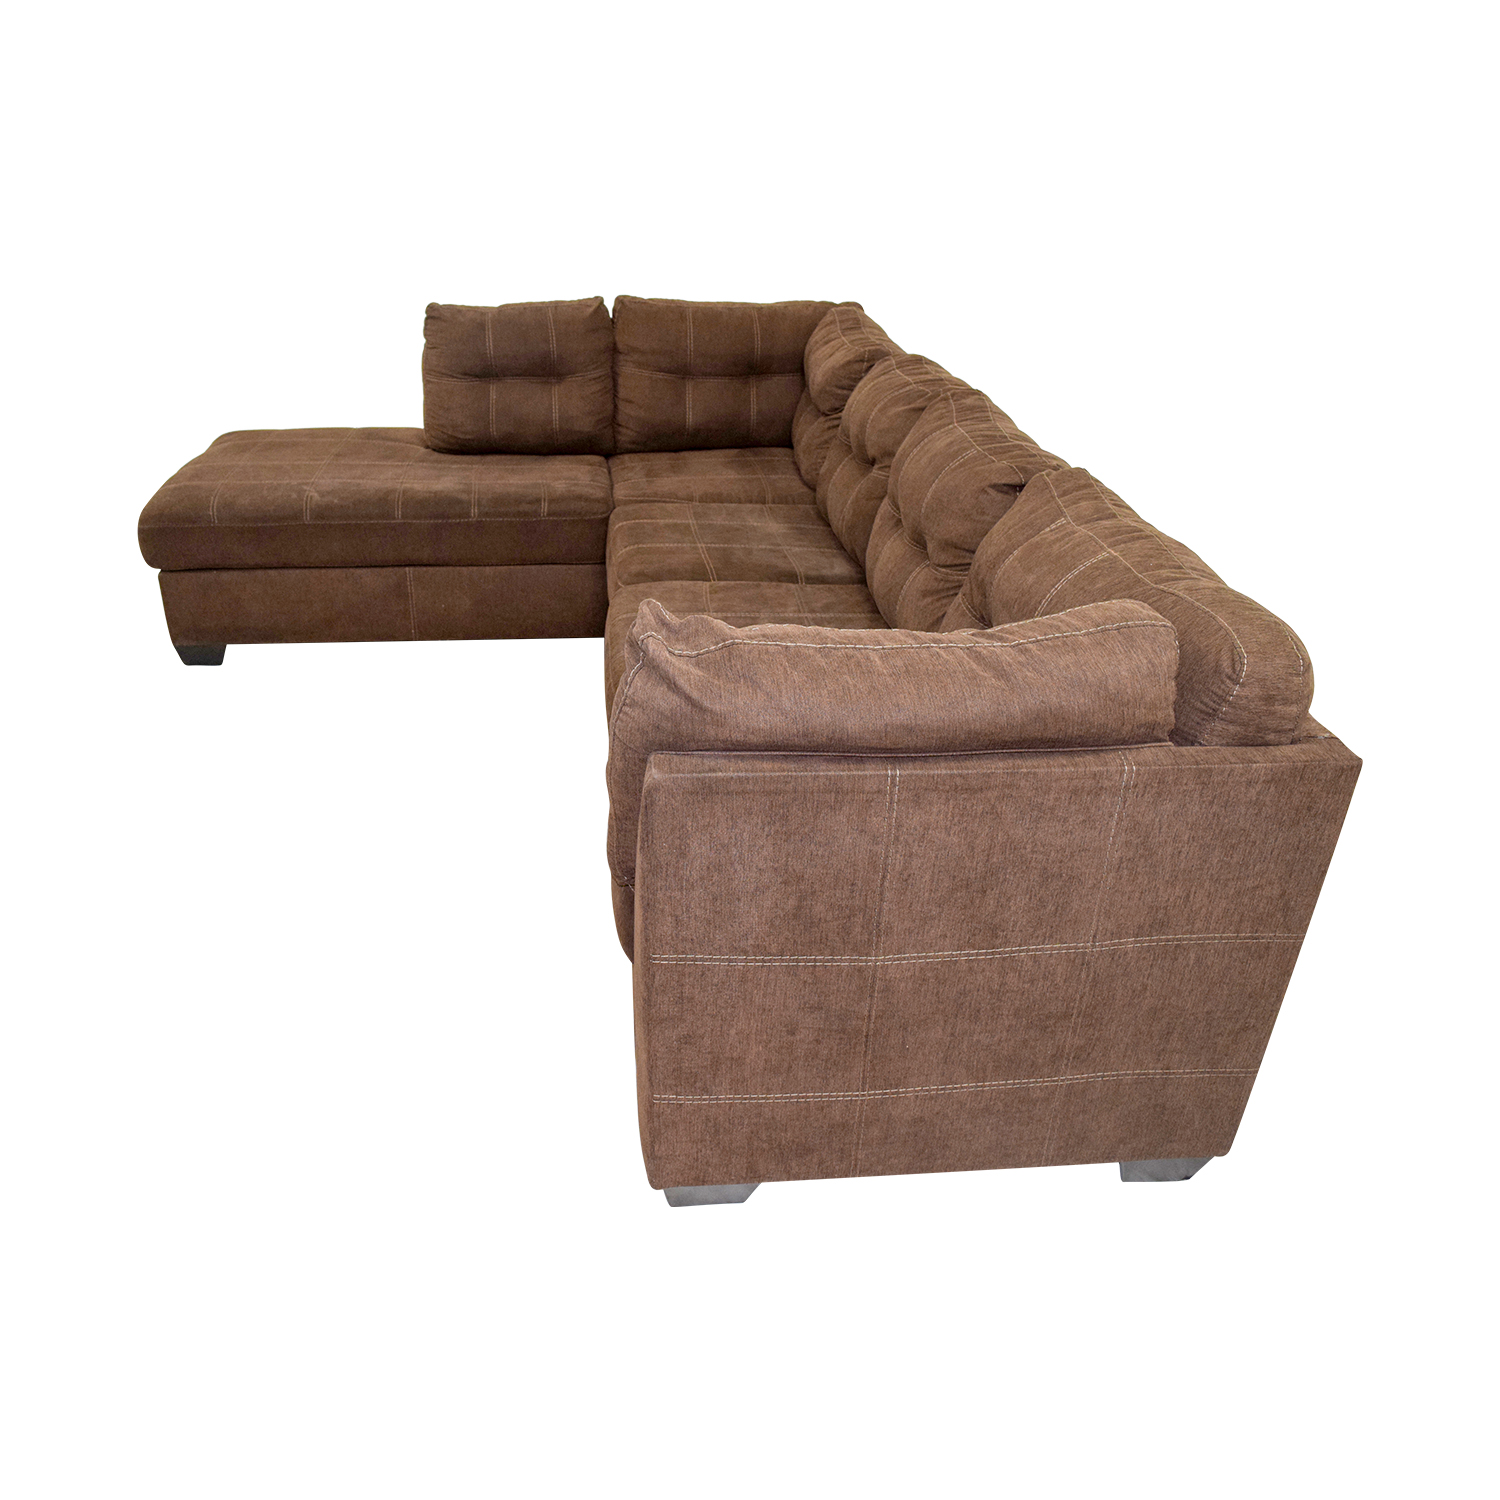 marco cream chaise sofa by factory outlet consumer reports sleeper sofas 64 off brown l shaped sectional